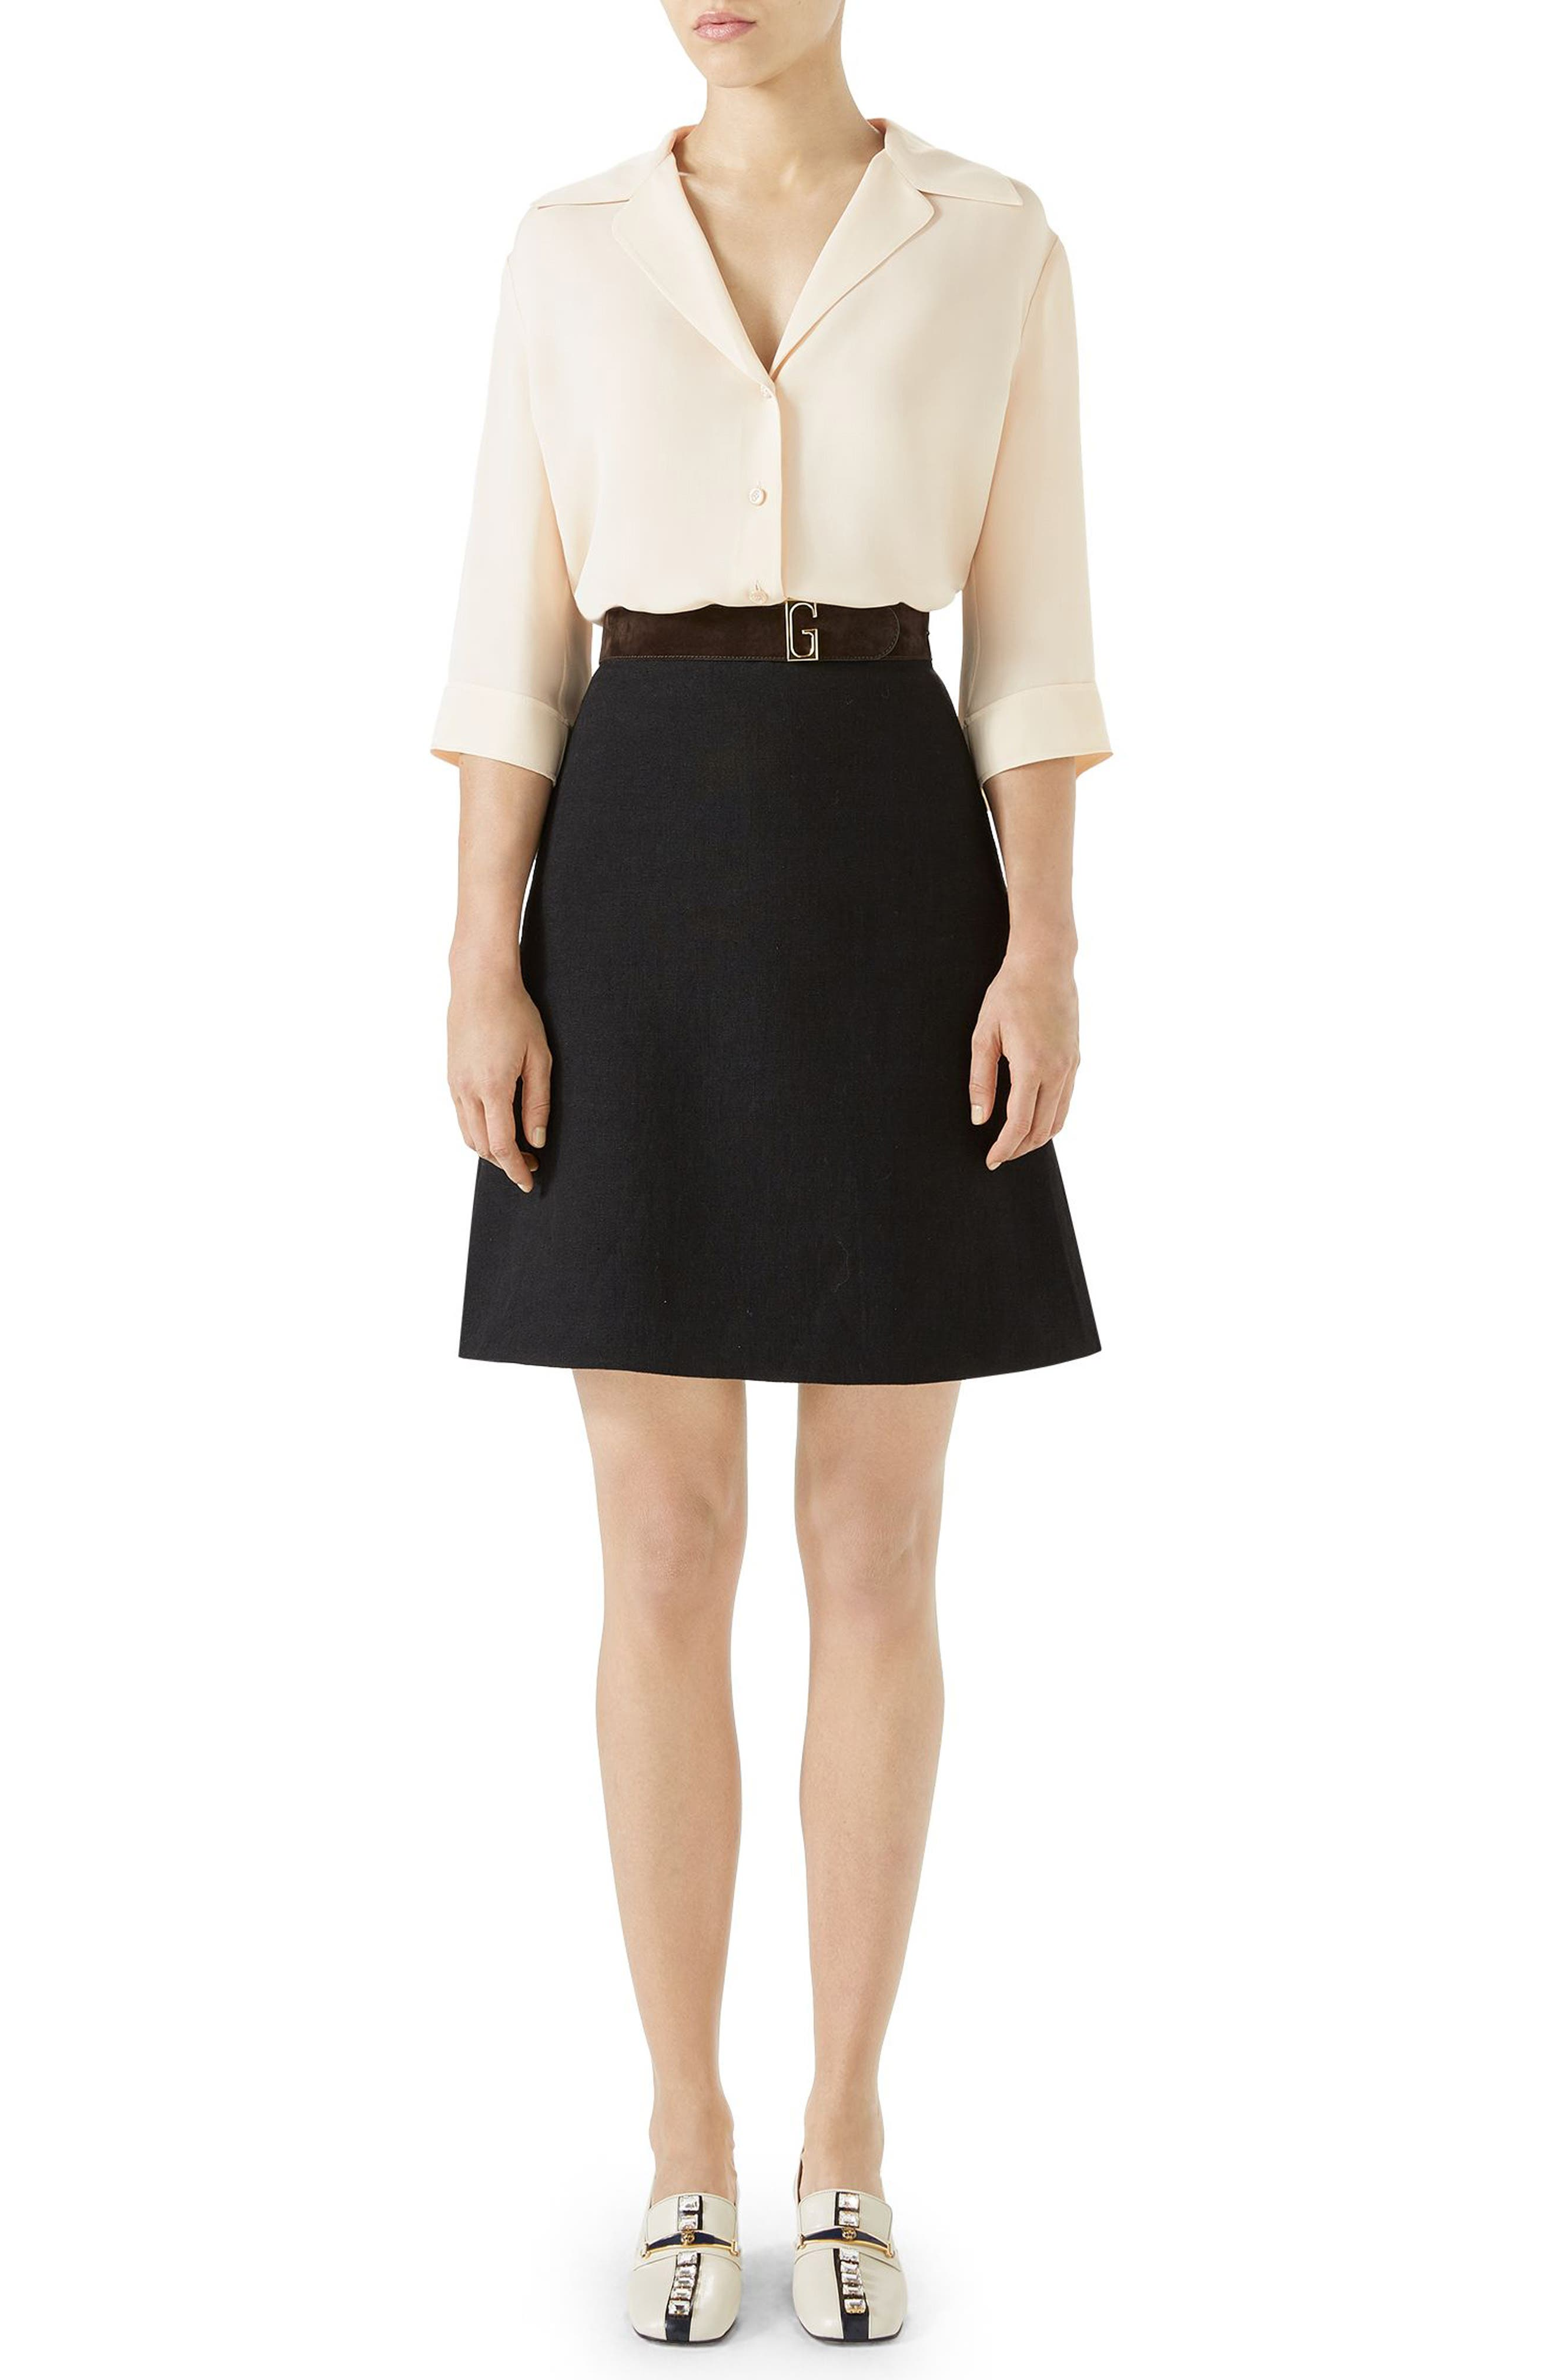 Linen Skirt with Suede Belt,                             Alternate thumbnail 4, color,                             Black